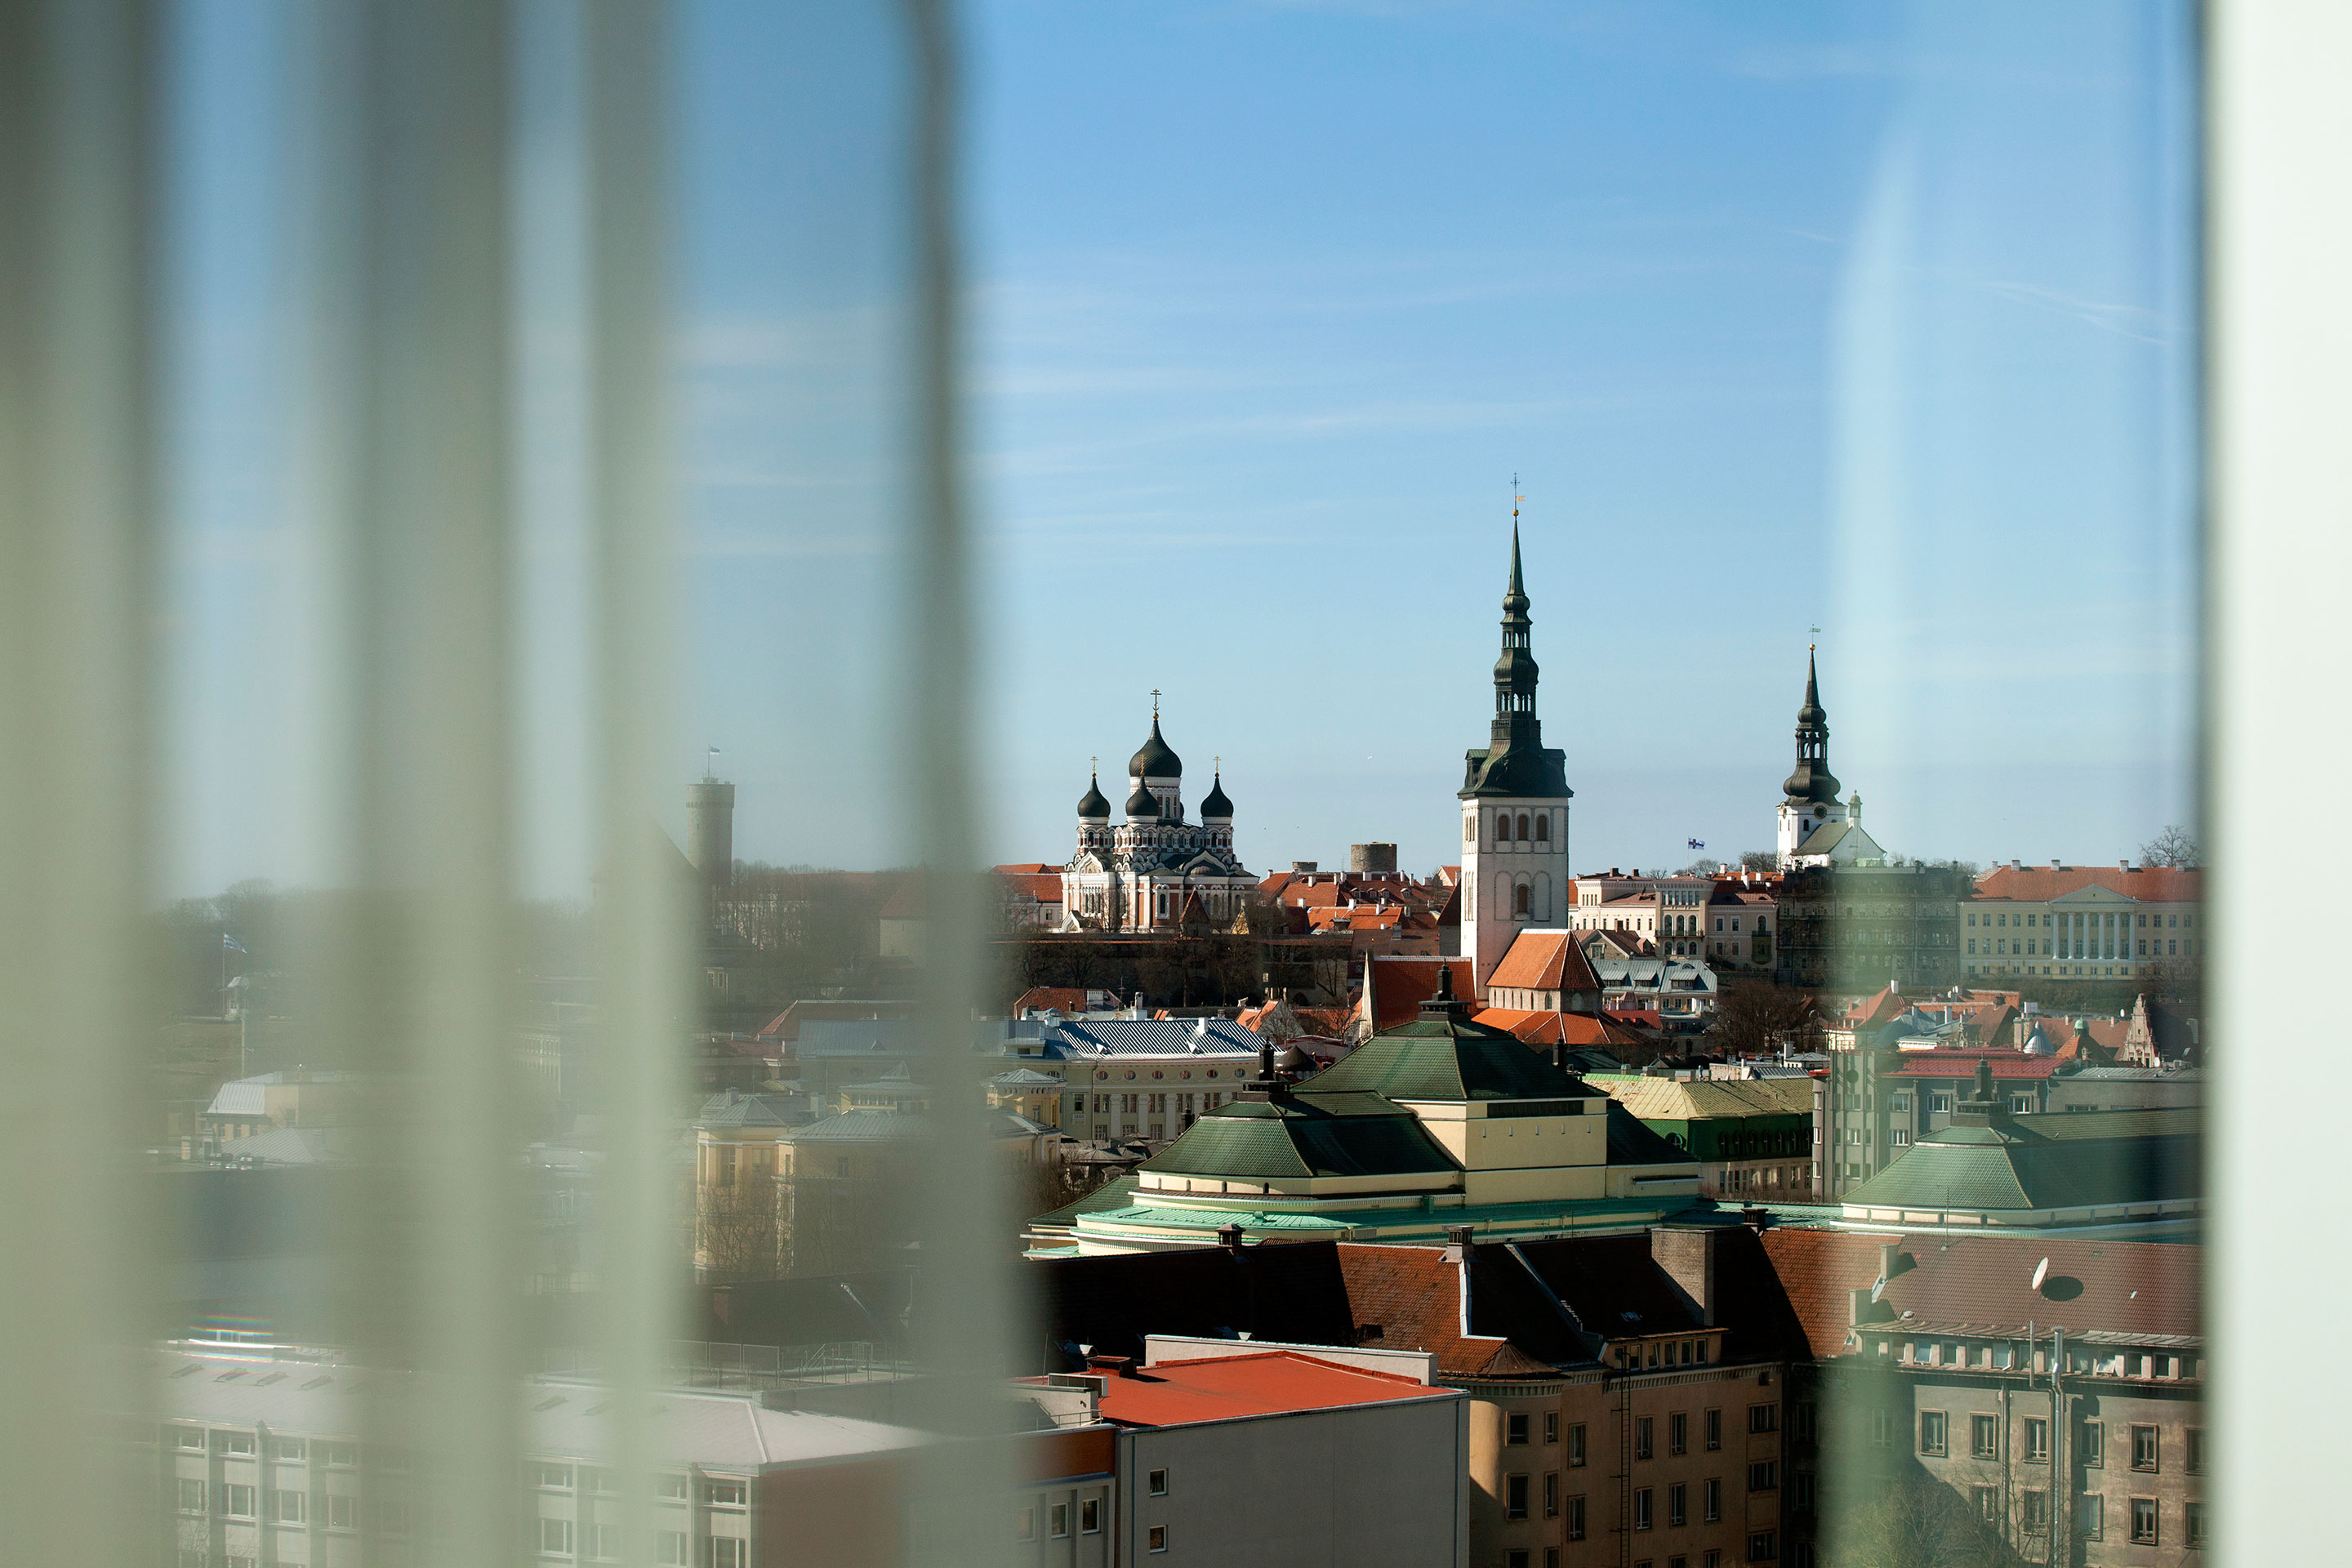 The capital of Estonia is Tallinn, a picturesque city of 400,000 whose winding medieval alleyways offer an elegant contrast to its digital present.